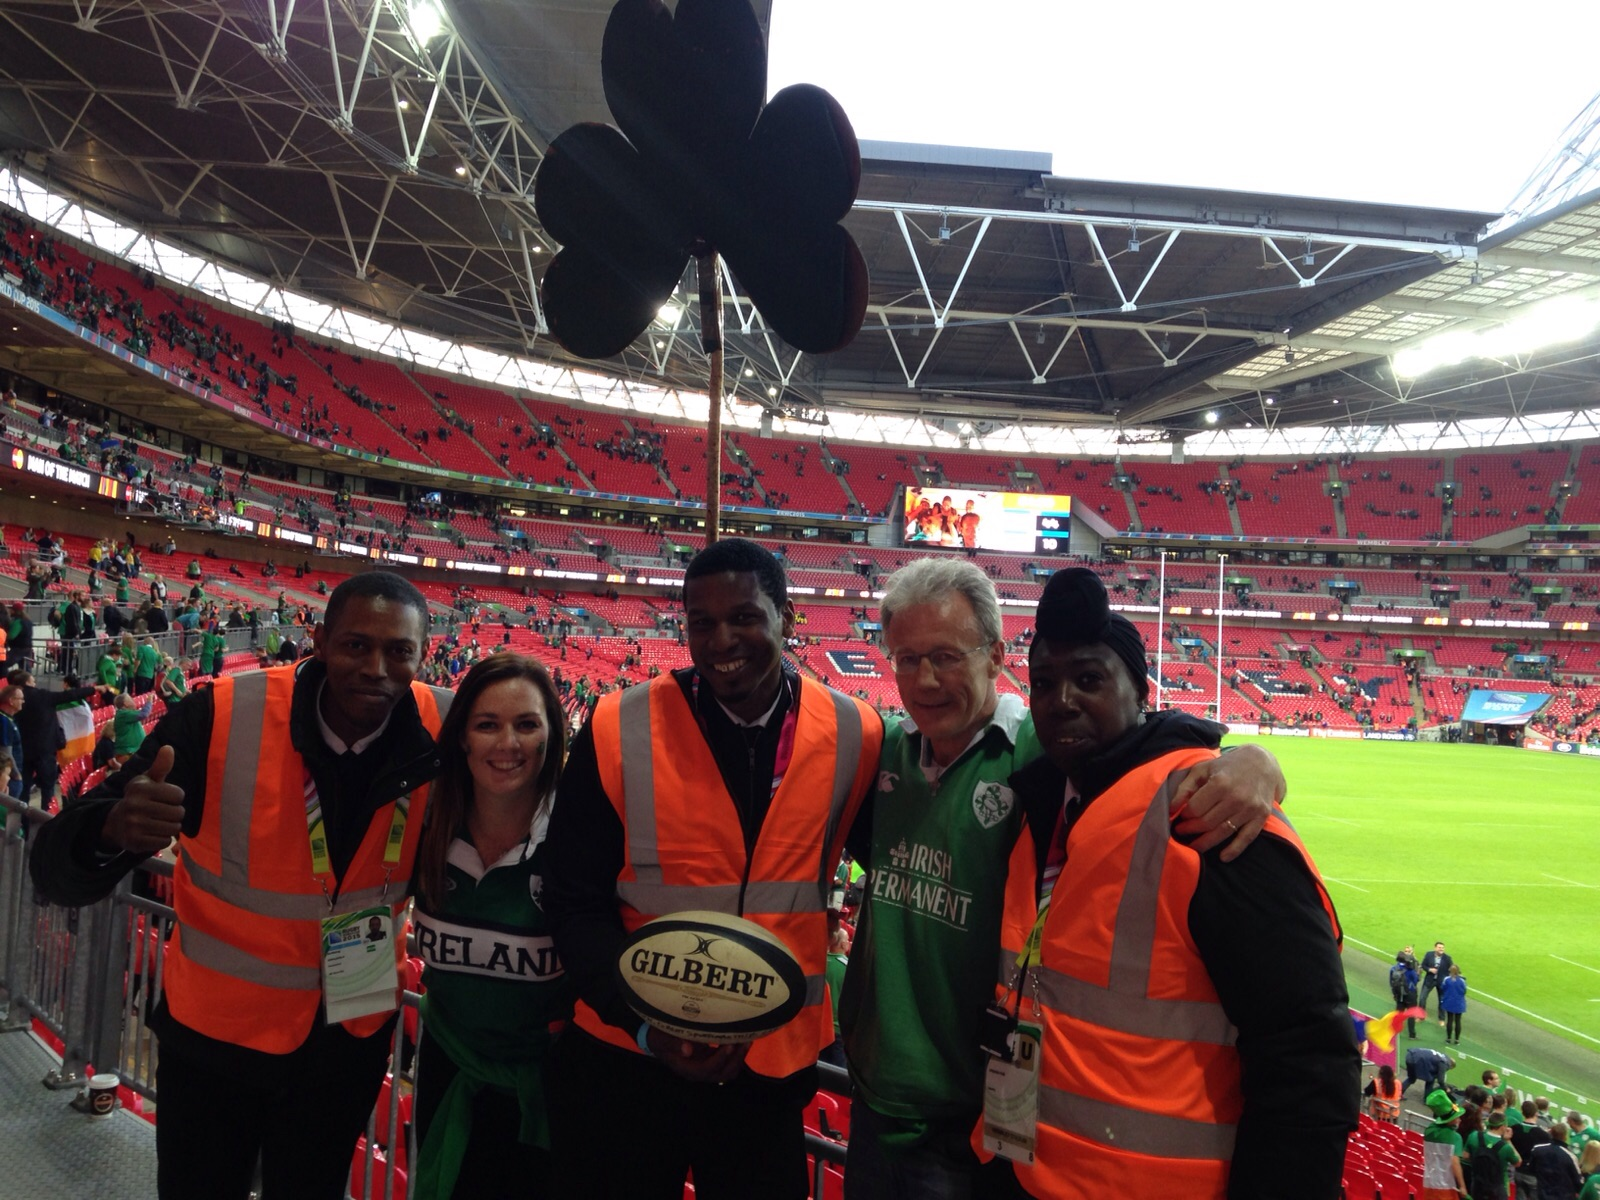 Friendly staff at Wembley - great atmosphere building